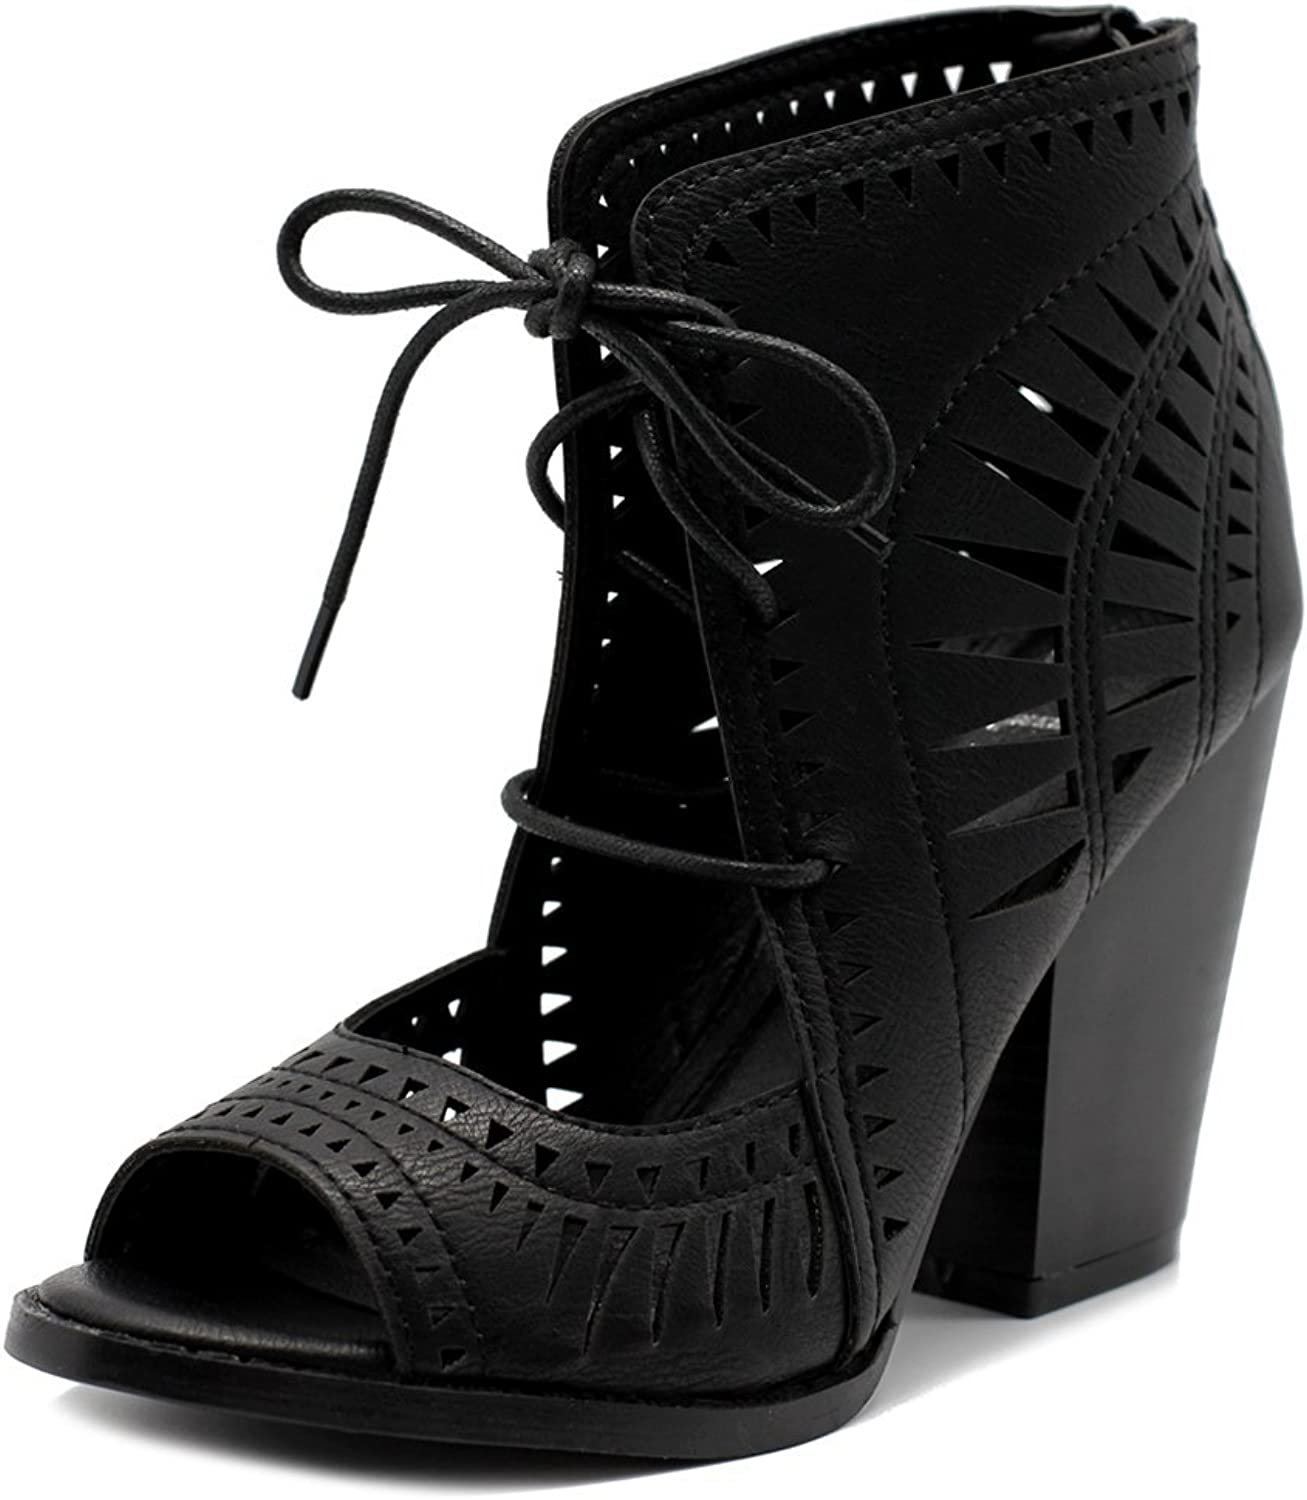 Ollio Women shoes Fashion Lace up Cutout Ankle High Heel Bootie Sandal